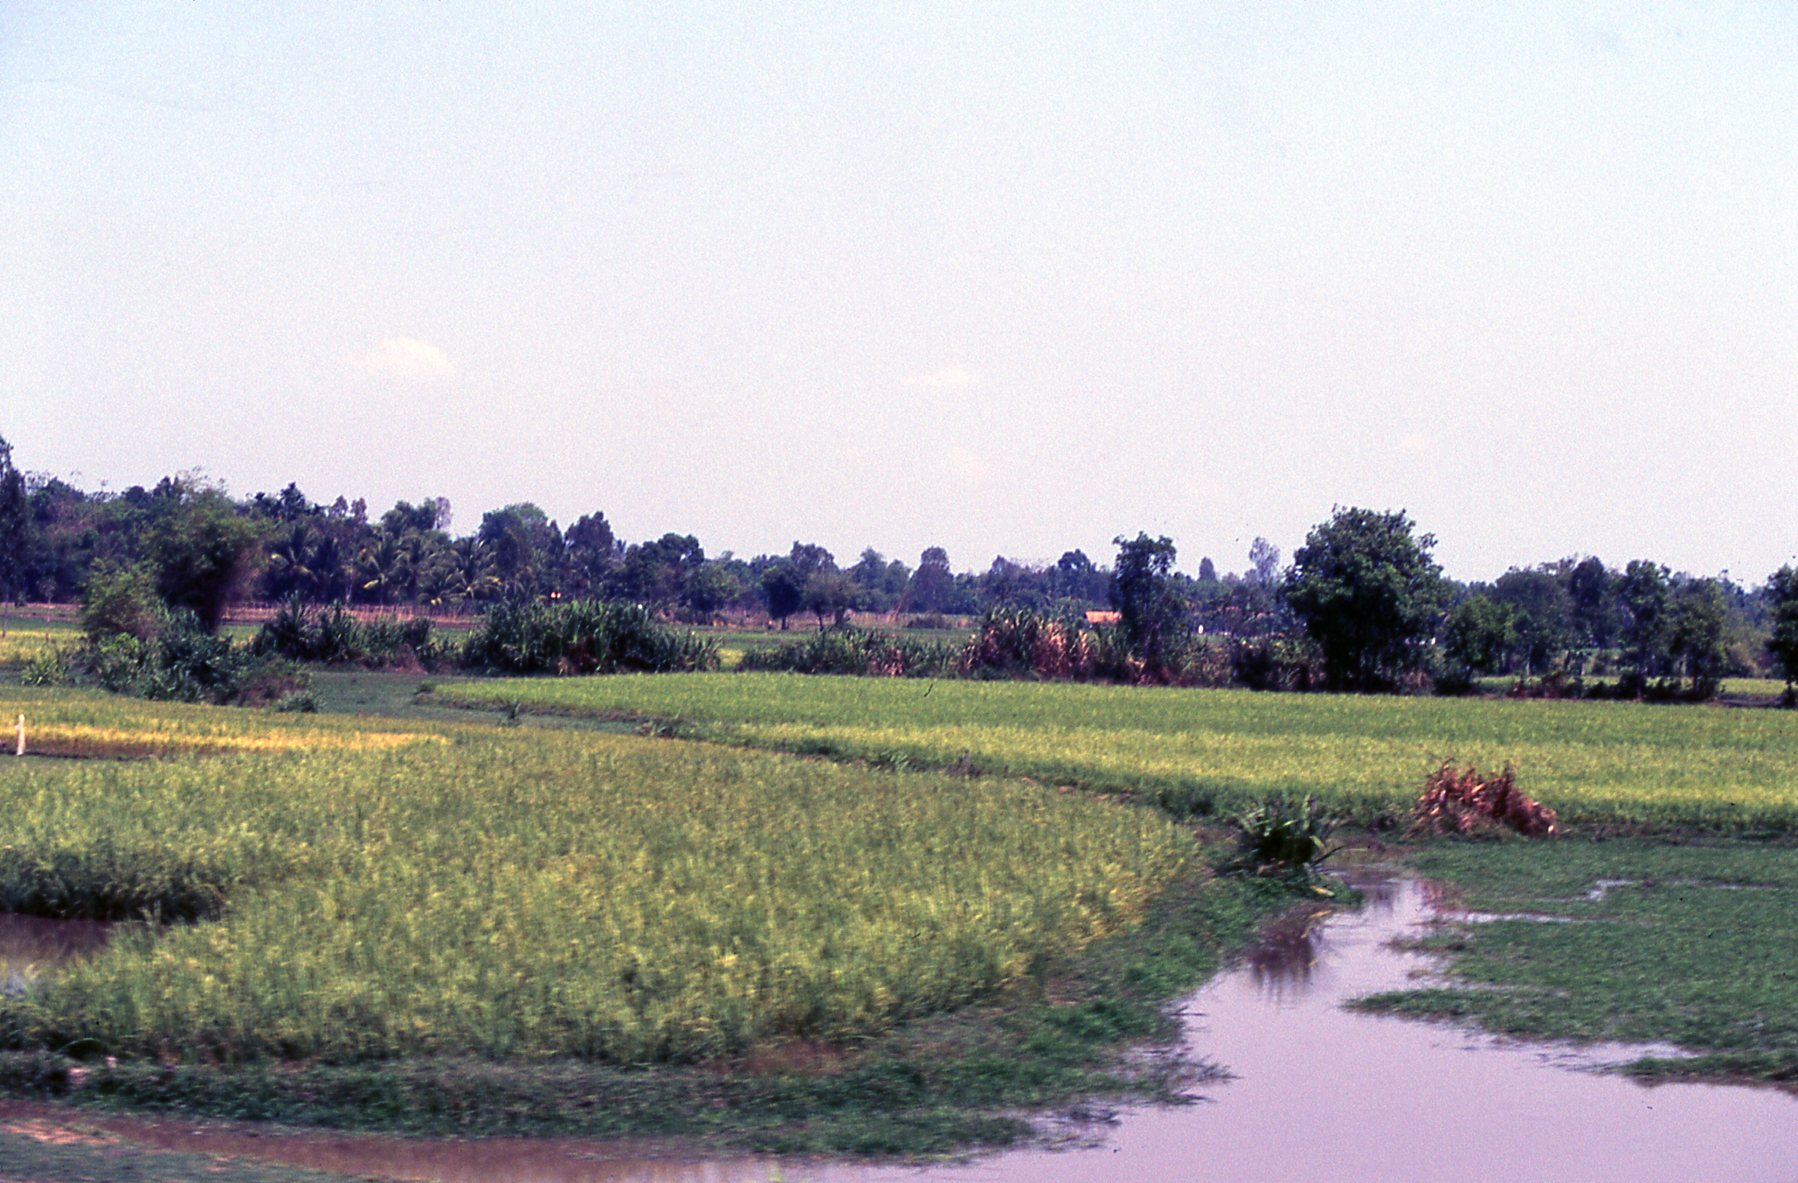 A rice field near Saigon